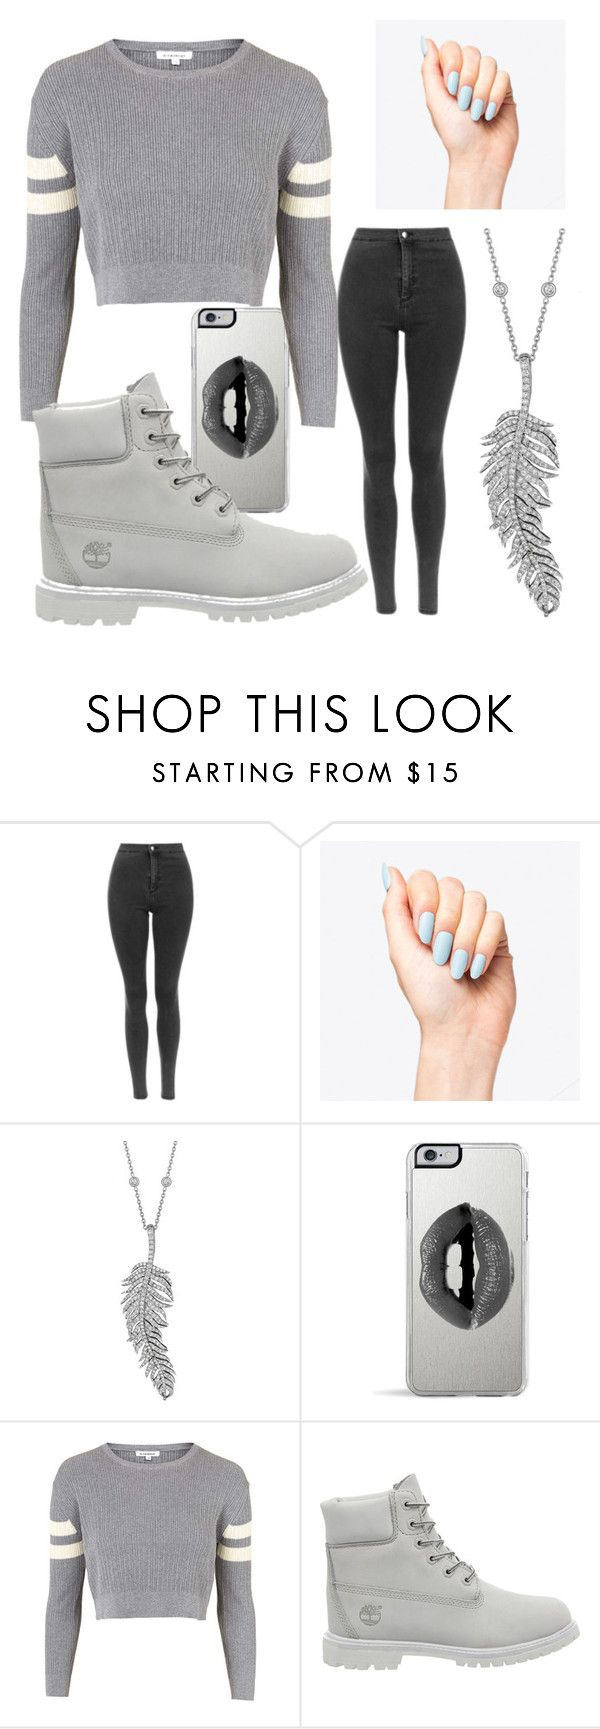 """a highschool football game"" by childishbeauty ❤ liked on Polyvore featuring Penny Preville, Lipsy, Topshop and Timberland"